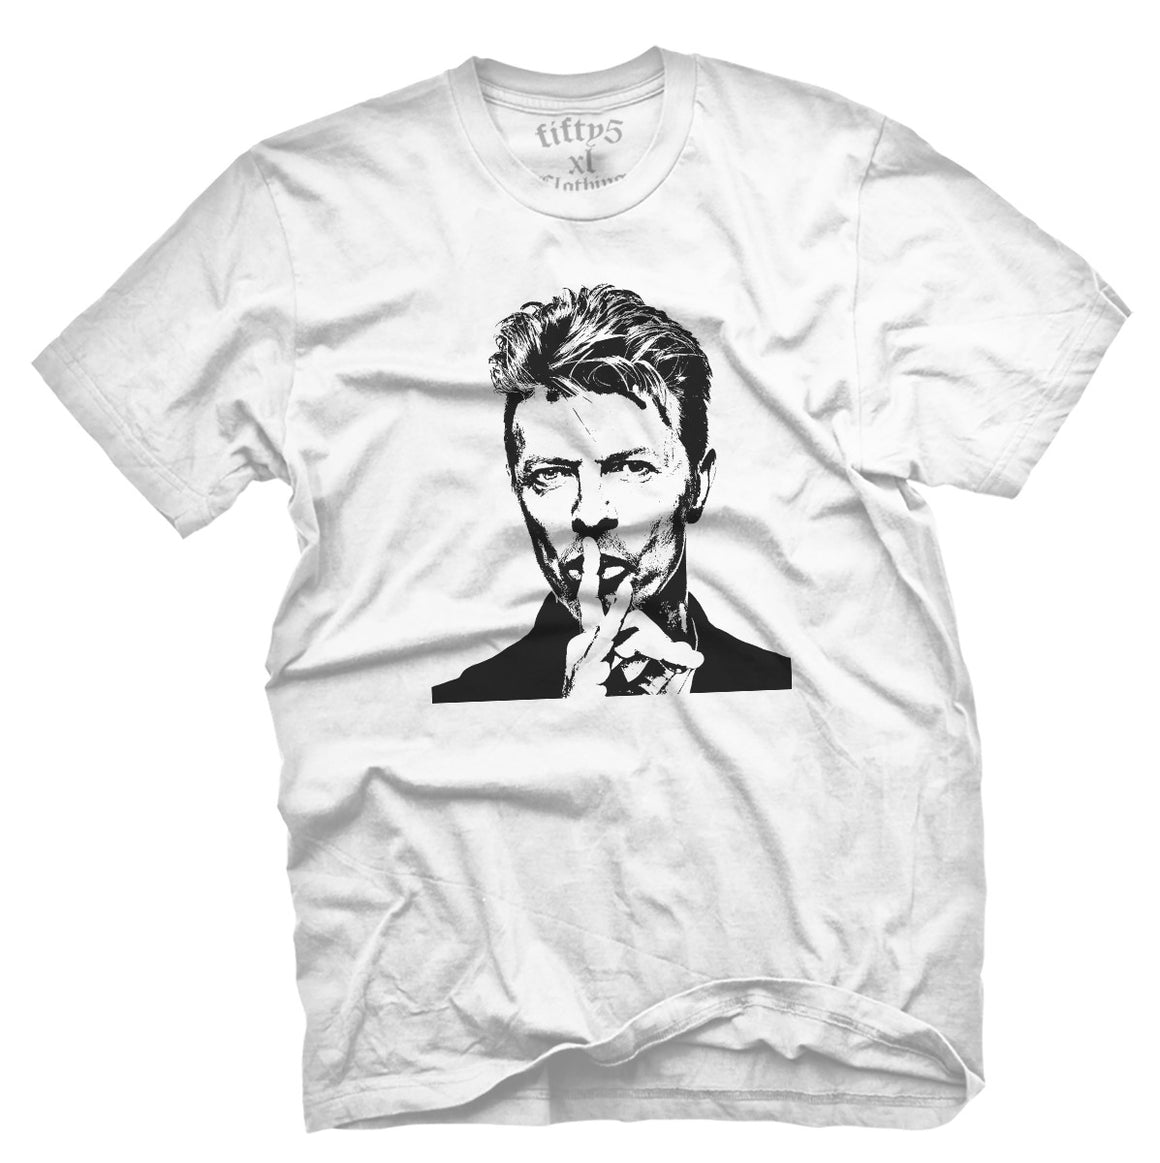 Fifty5 Clothing Bowie Men's T Shirt